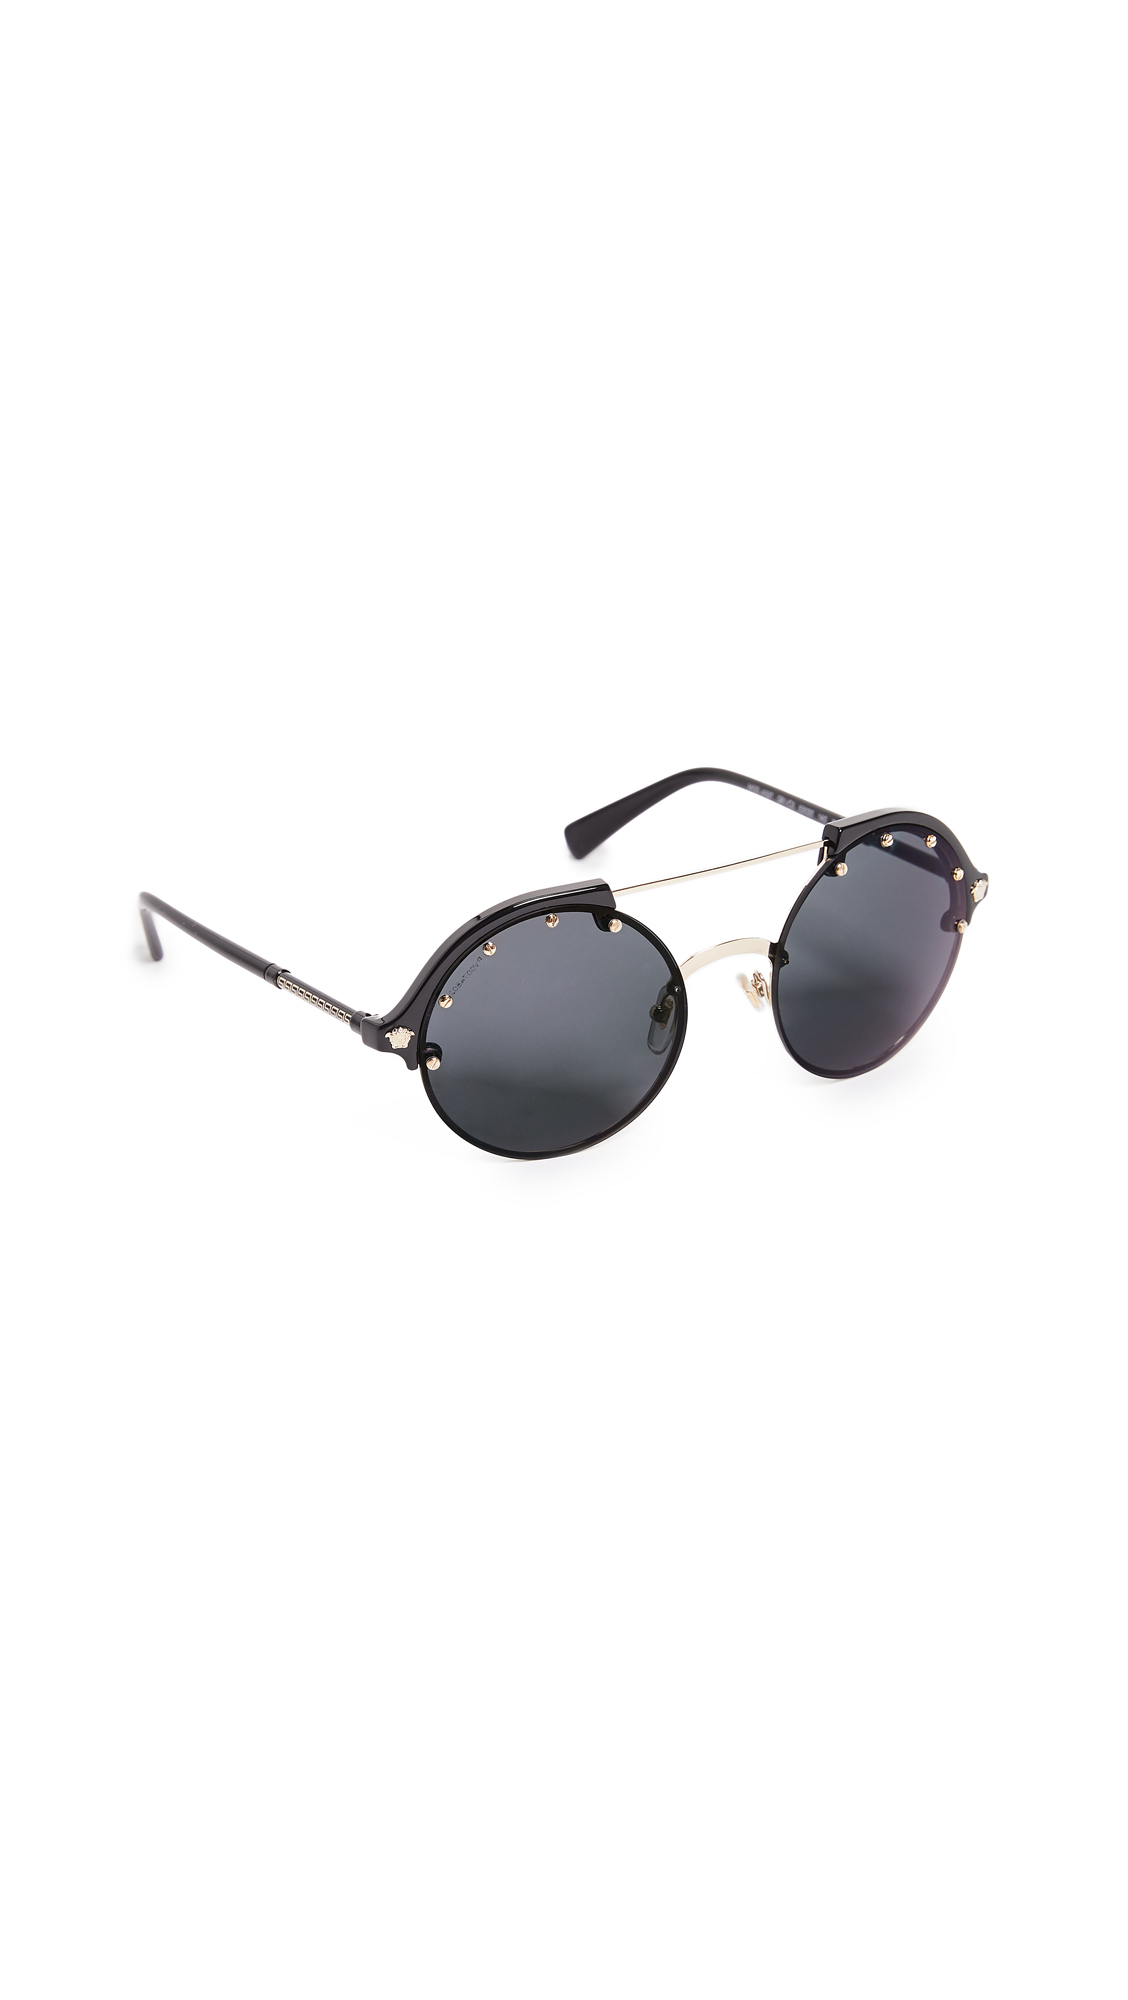 Versace Round Aviator Sunglasses - Black/Grey